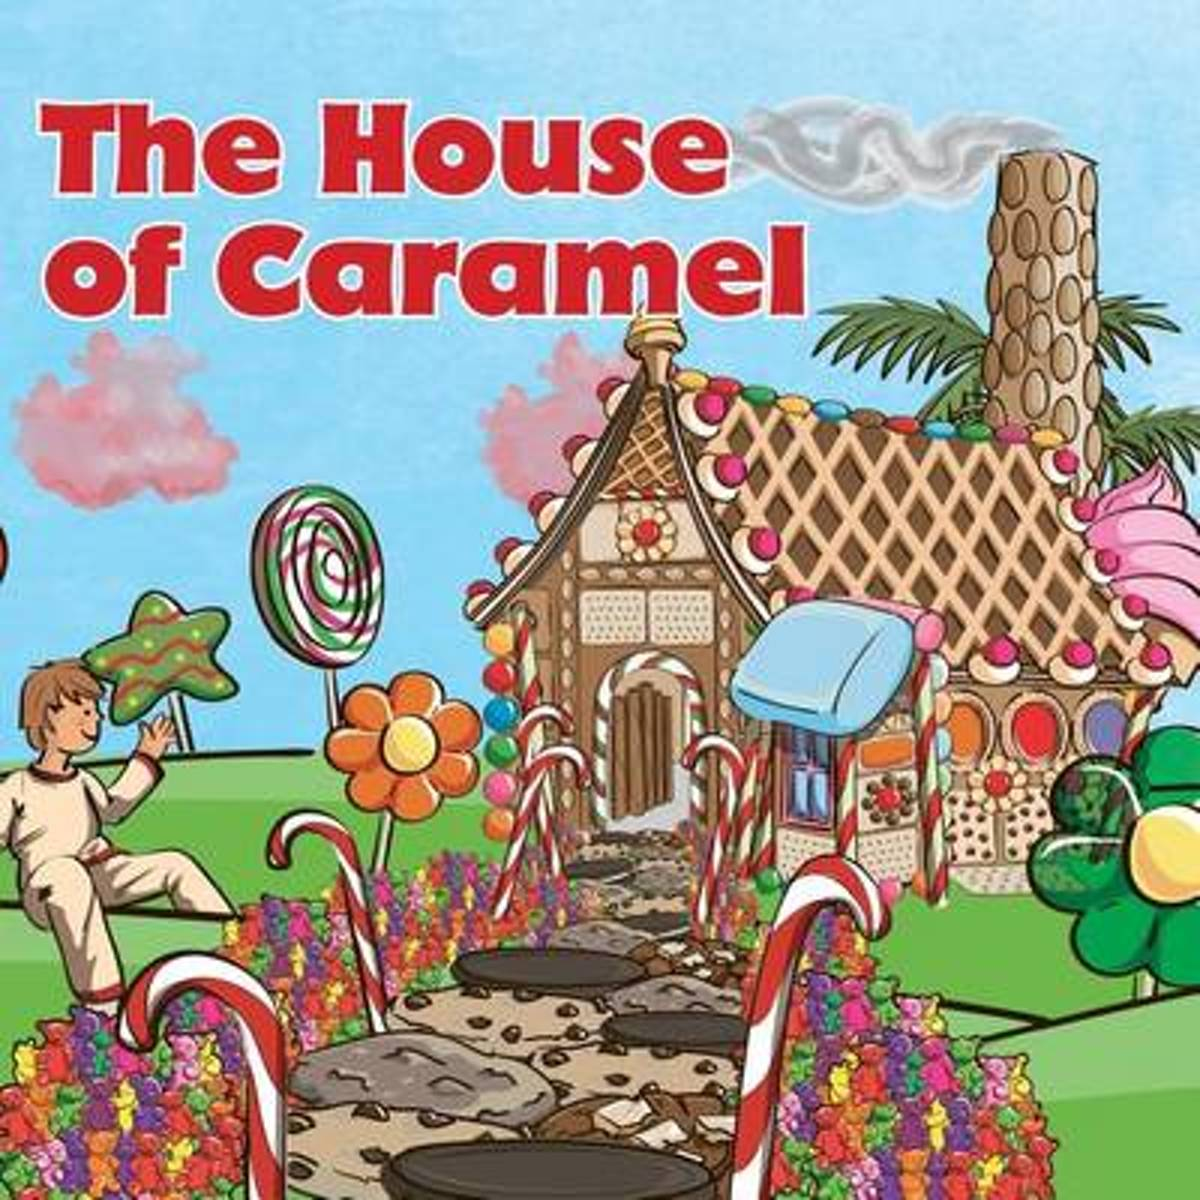 The House of Caramel